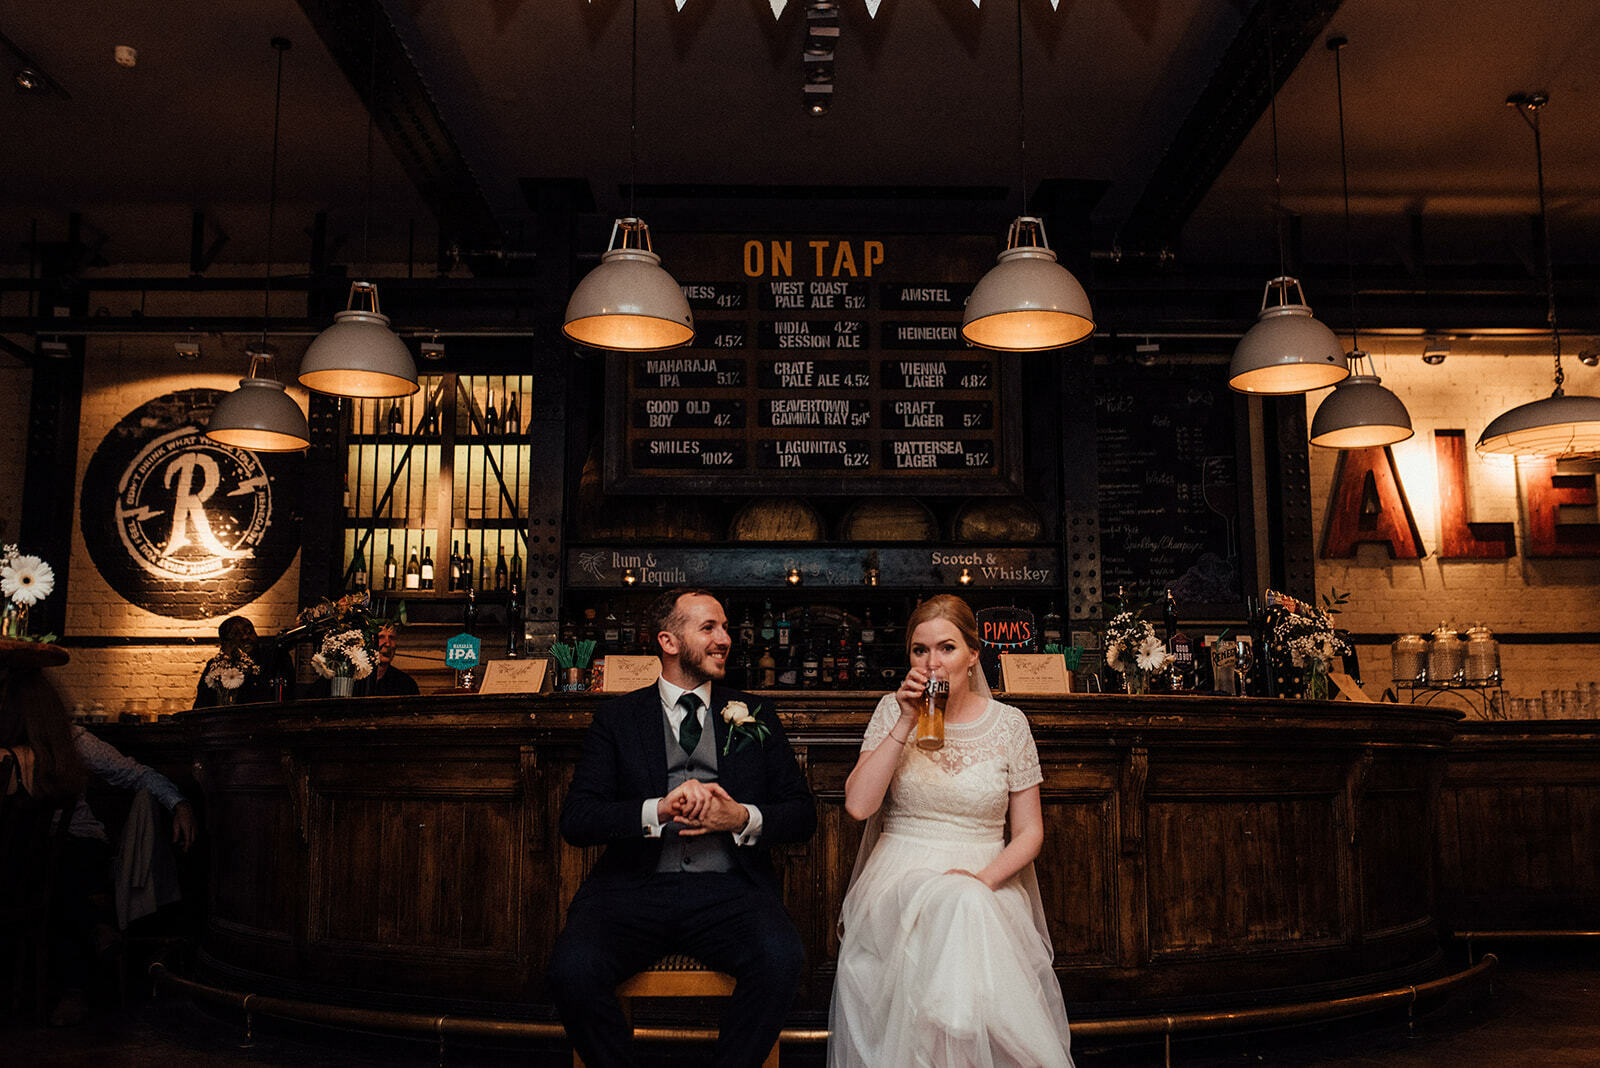 Bride and Groom sit in front of the bar at The Depot N7 during their wedding